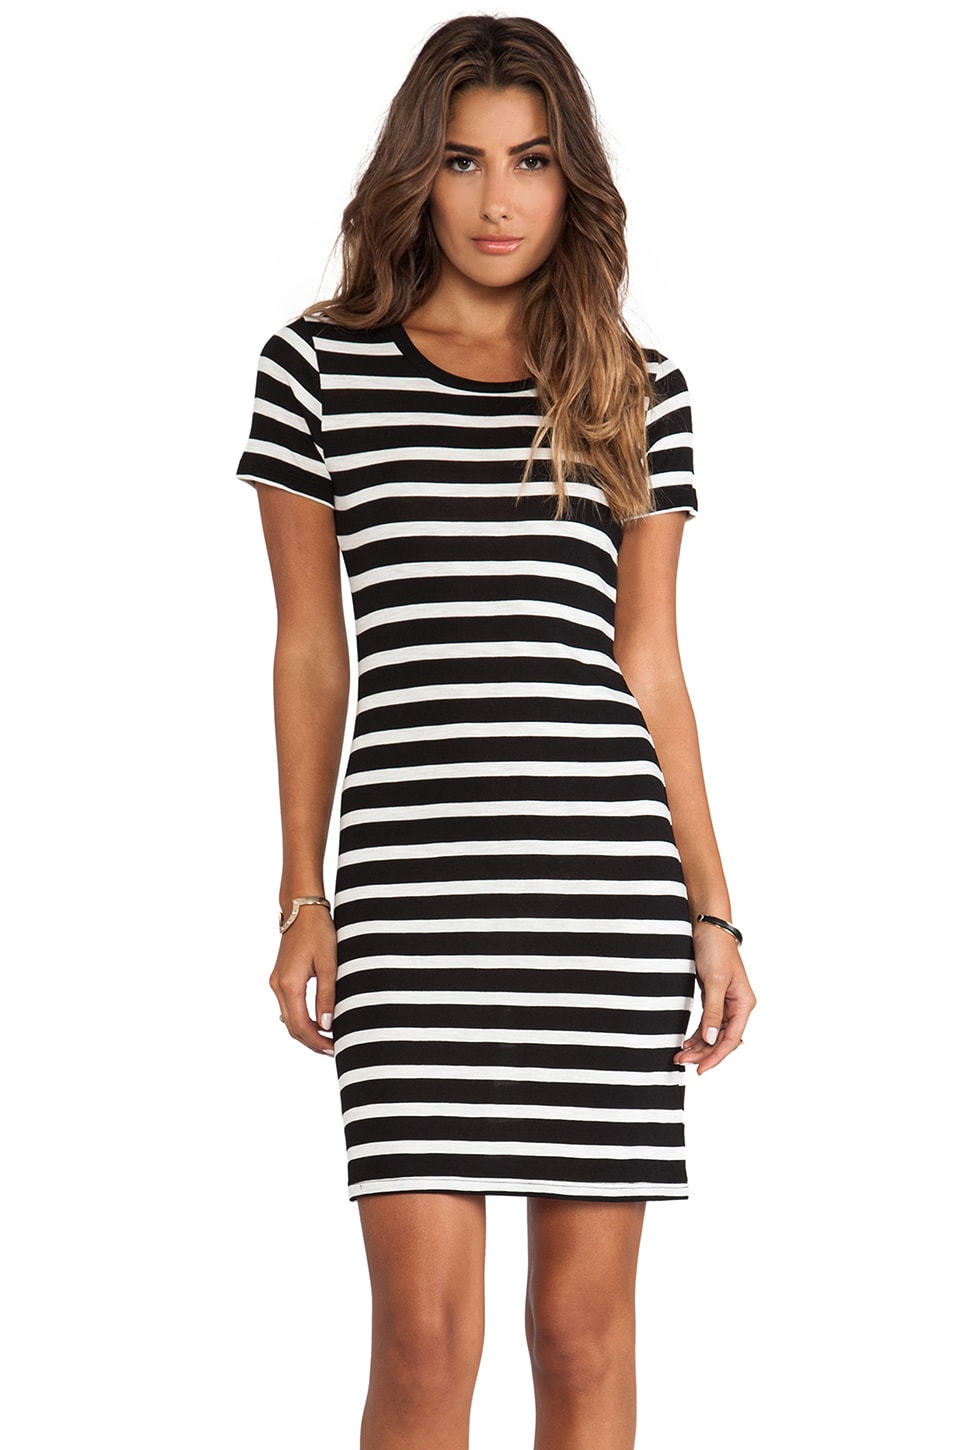 Velvet by Graham & Spencer Lily Aldridge for Velvet Anna Slub Stripe Dress in Black & Cream